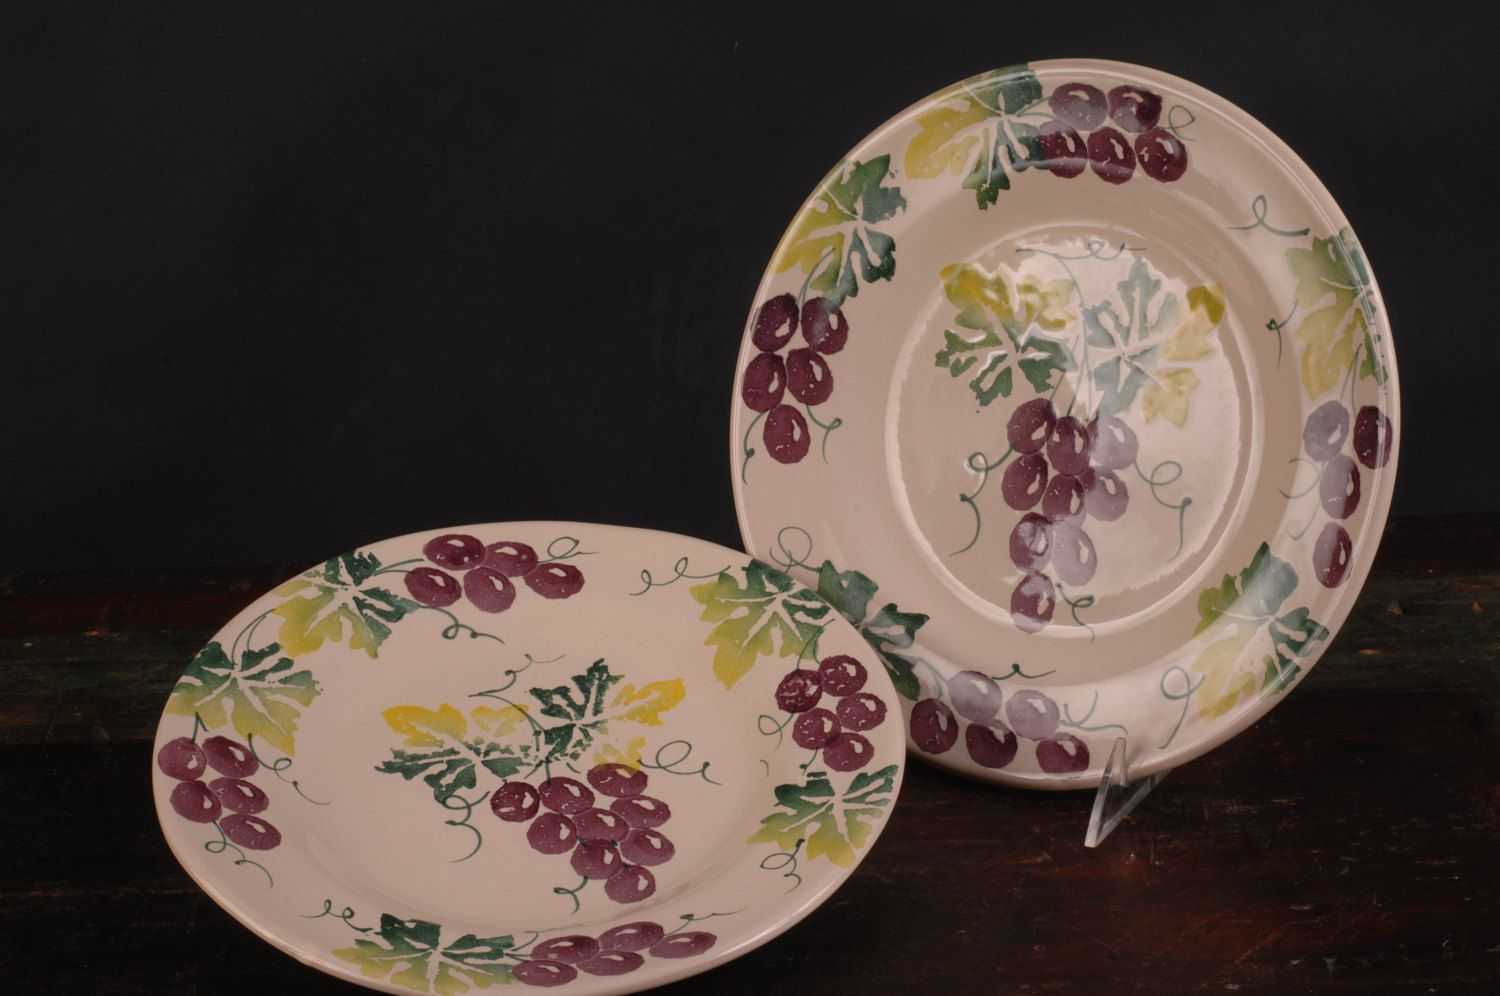 Vintage Grape Plates Made for Smith u0026 Hawkin Italy by dinaandpartners on Etsy & Vintage Grape Plates Made for Smith u0026 Hawkin Italy by ...